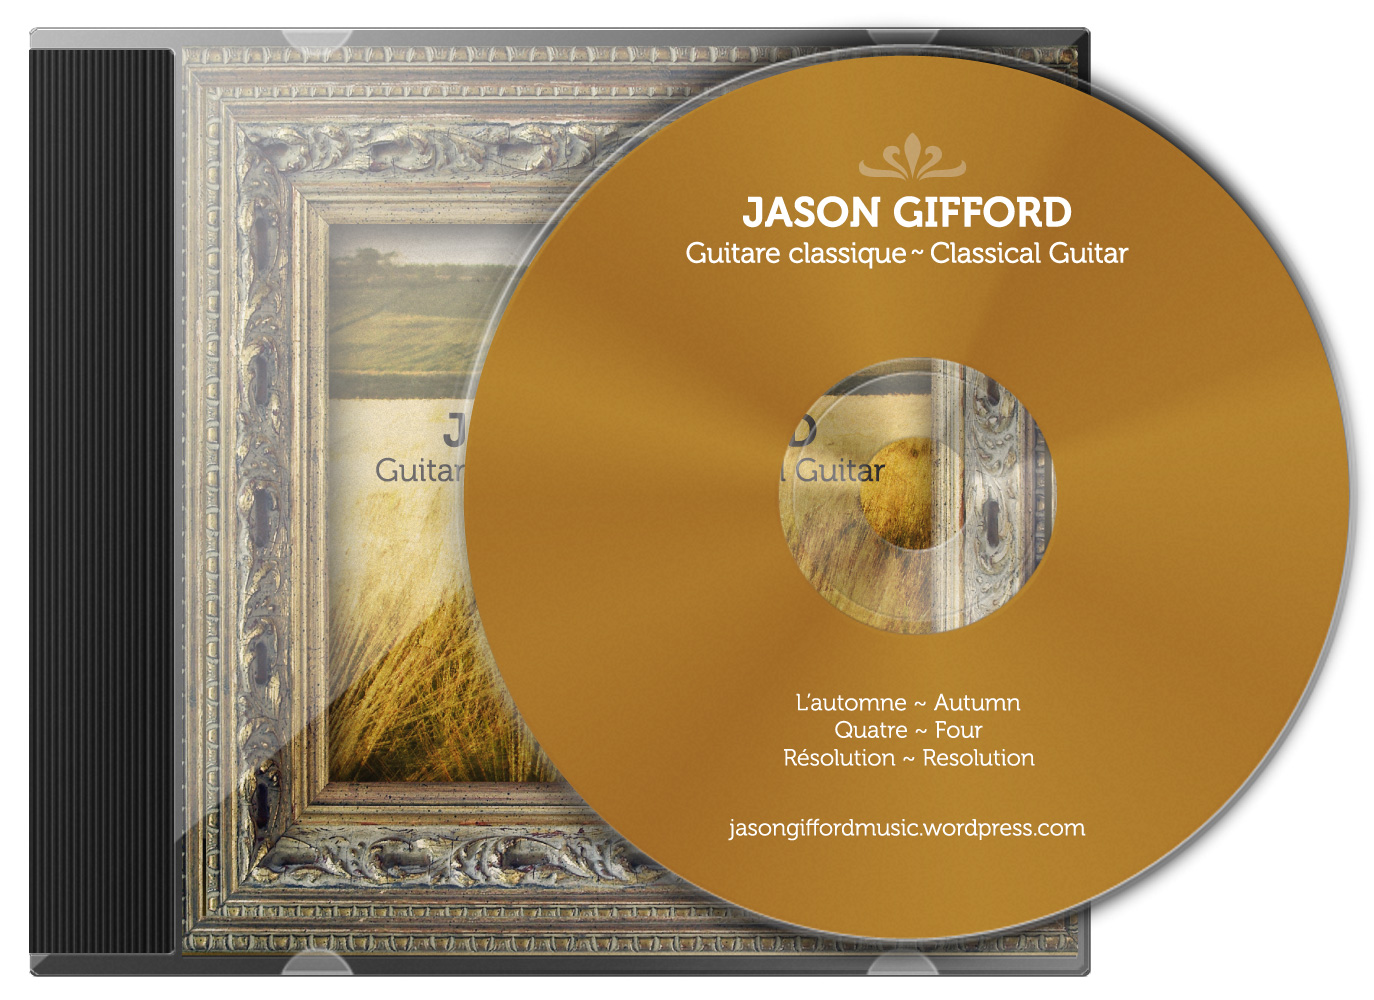 Jason-Gifford-cover-cd